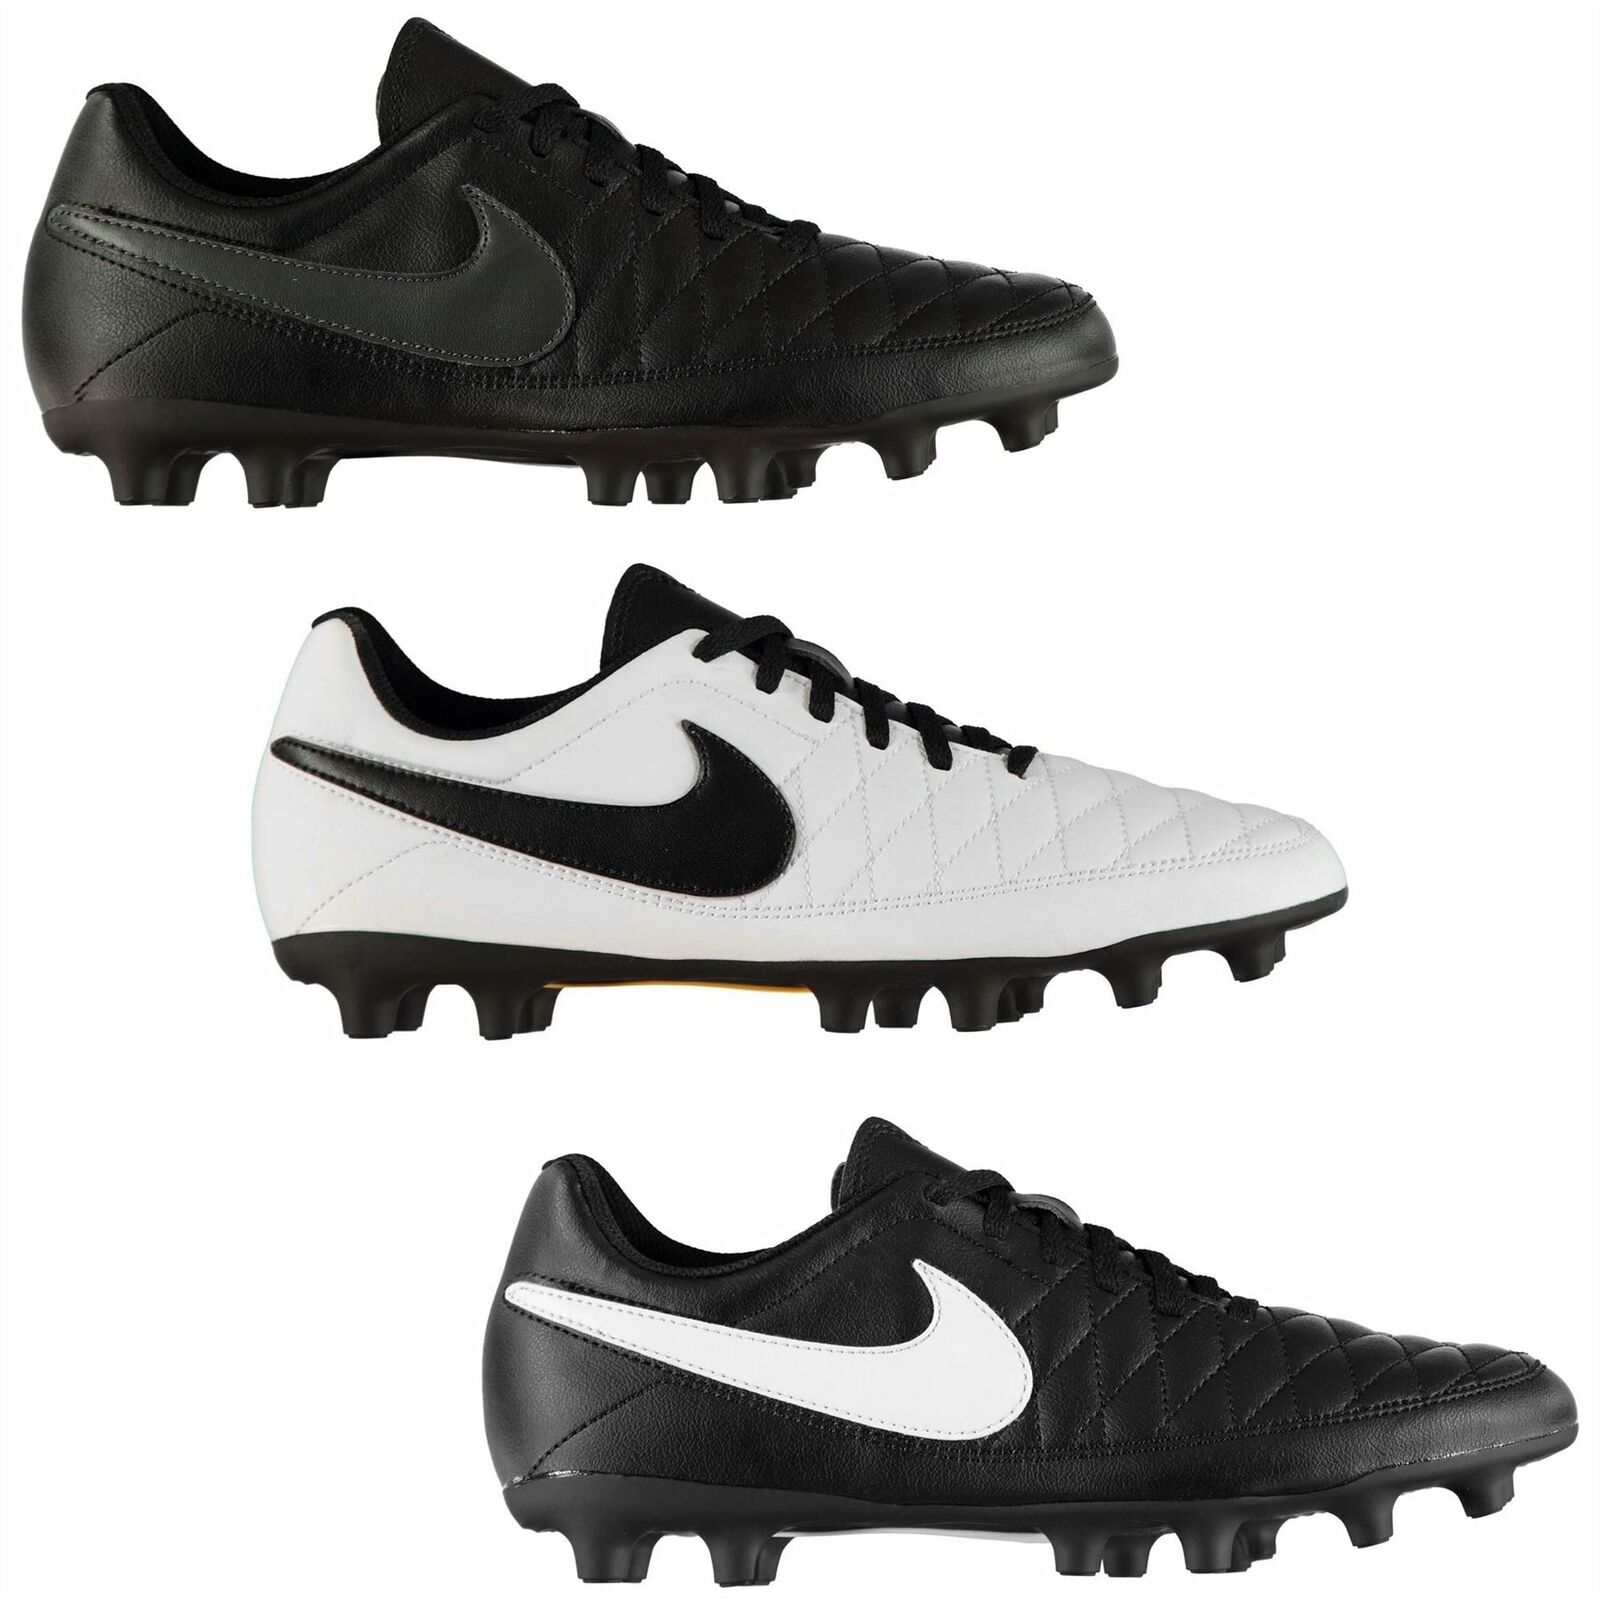 Nike Majestry FG Firm Ground Football Stiefel Mens Soccer schuhe Cleats